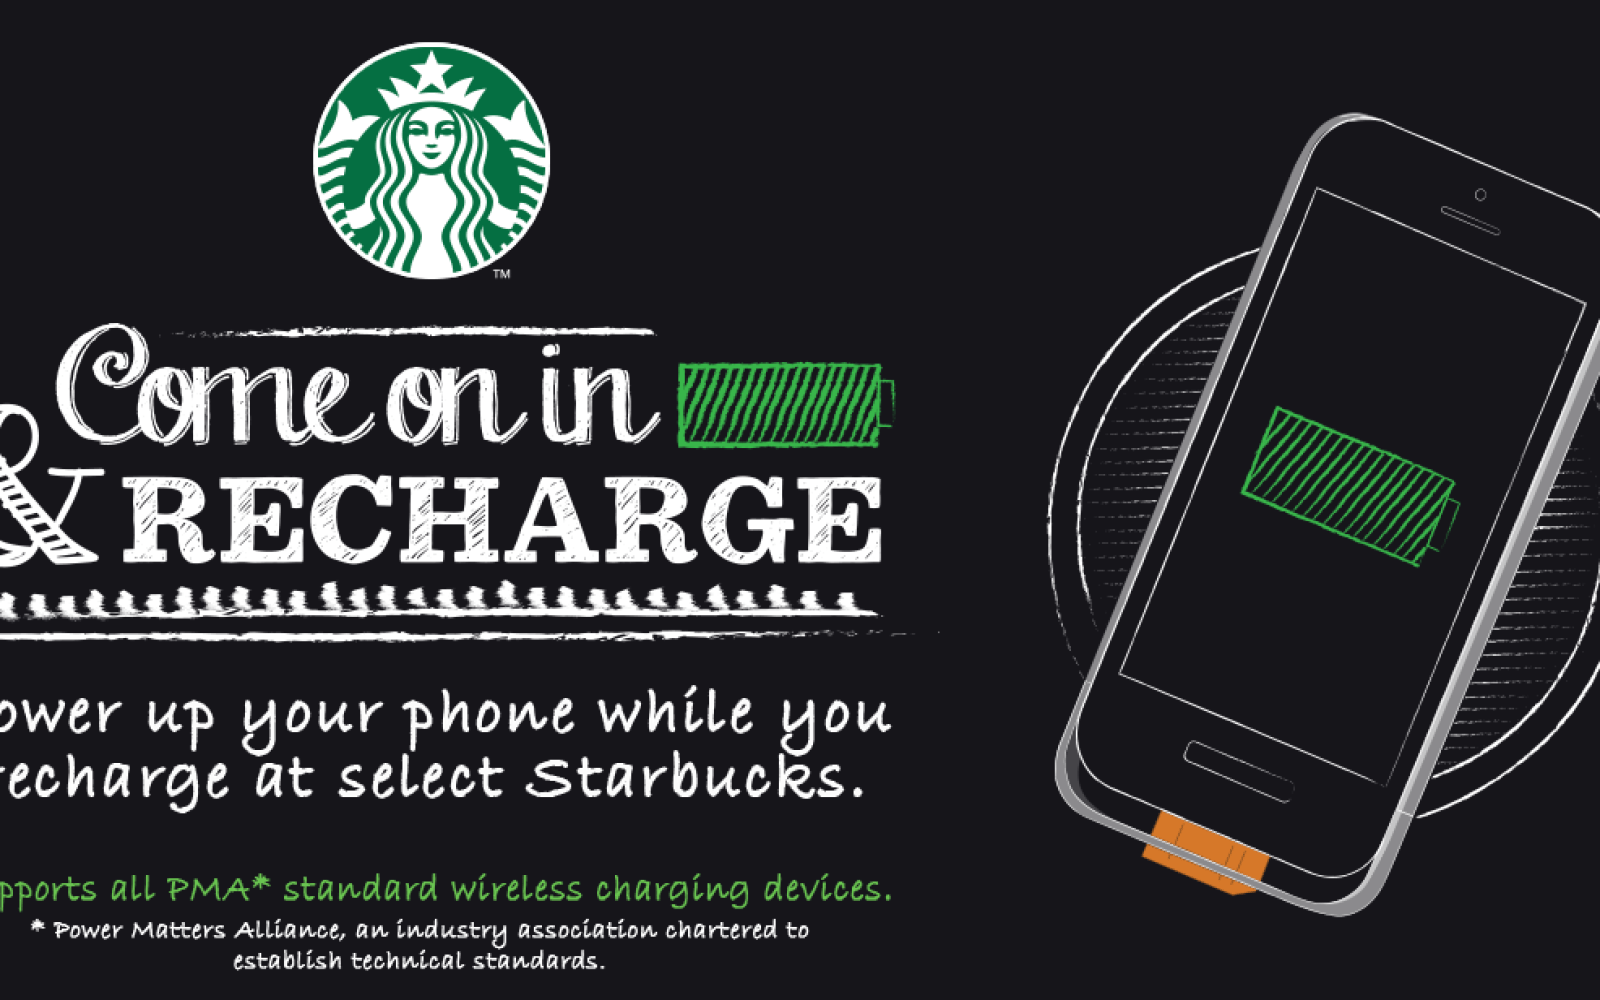 Starbucks teams up with Duracell to place iPhone-compatible wireless chargers in coffee shops